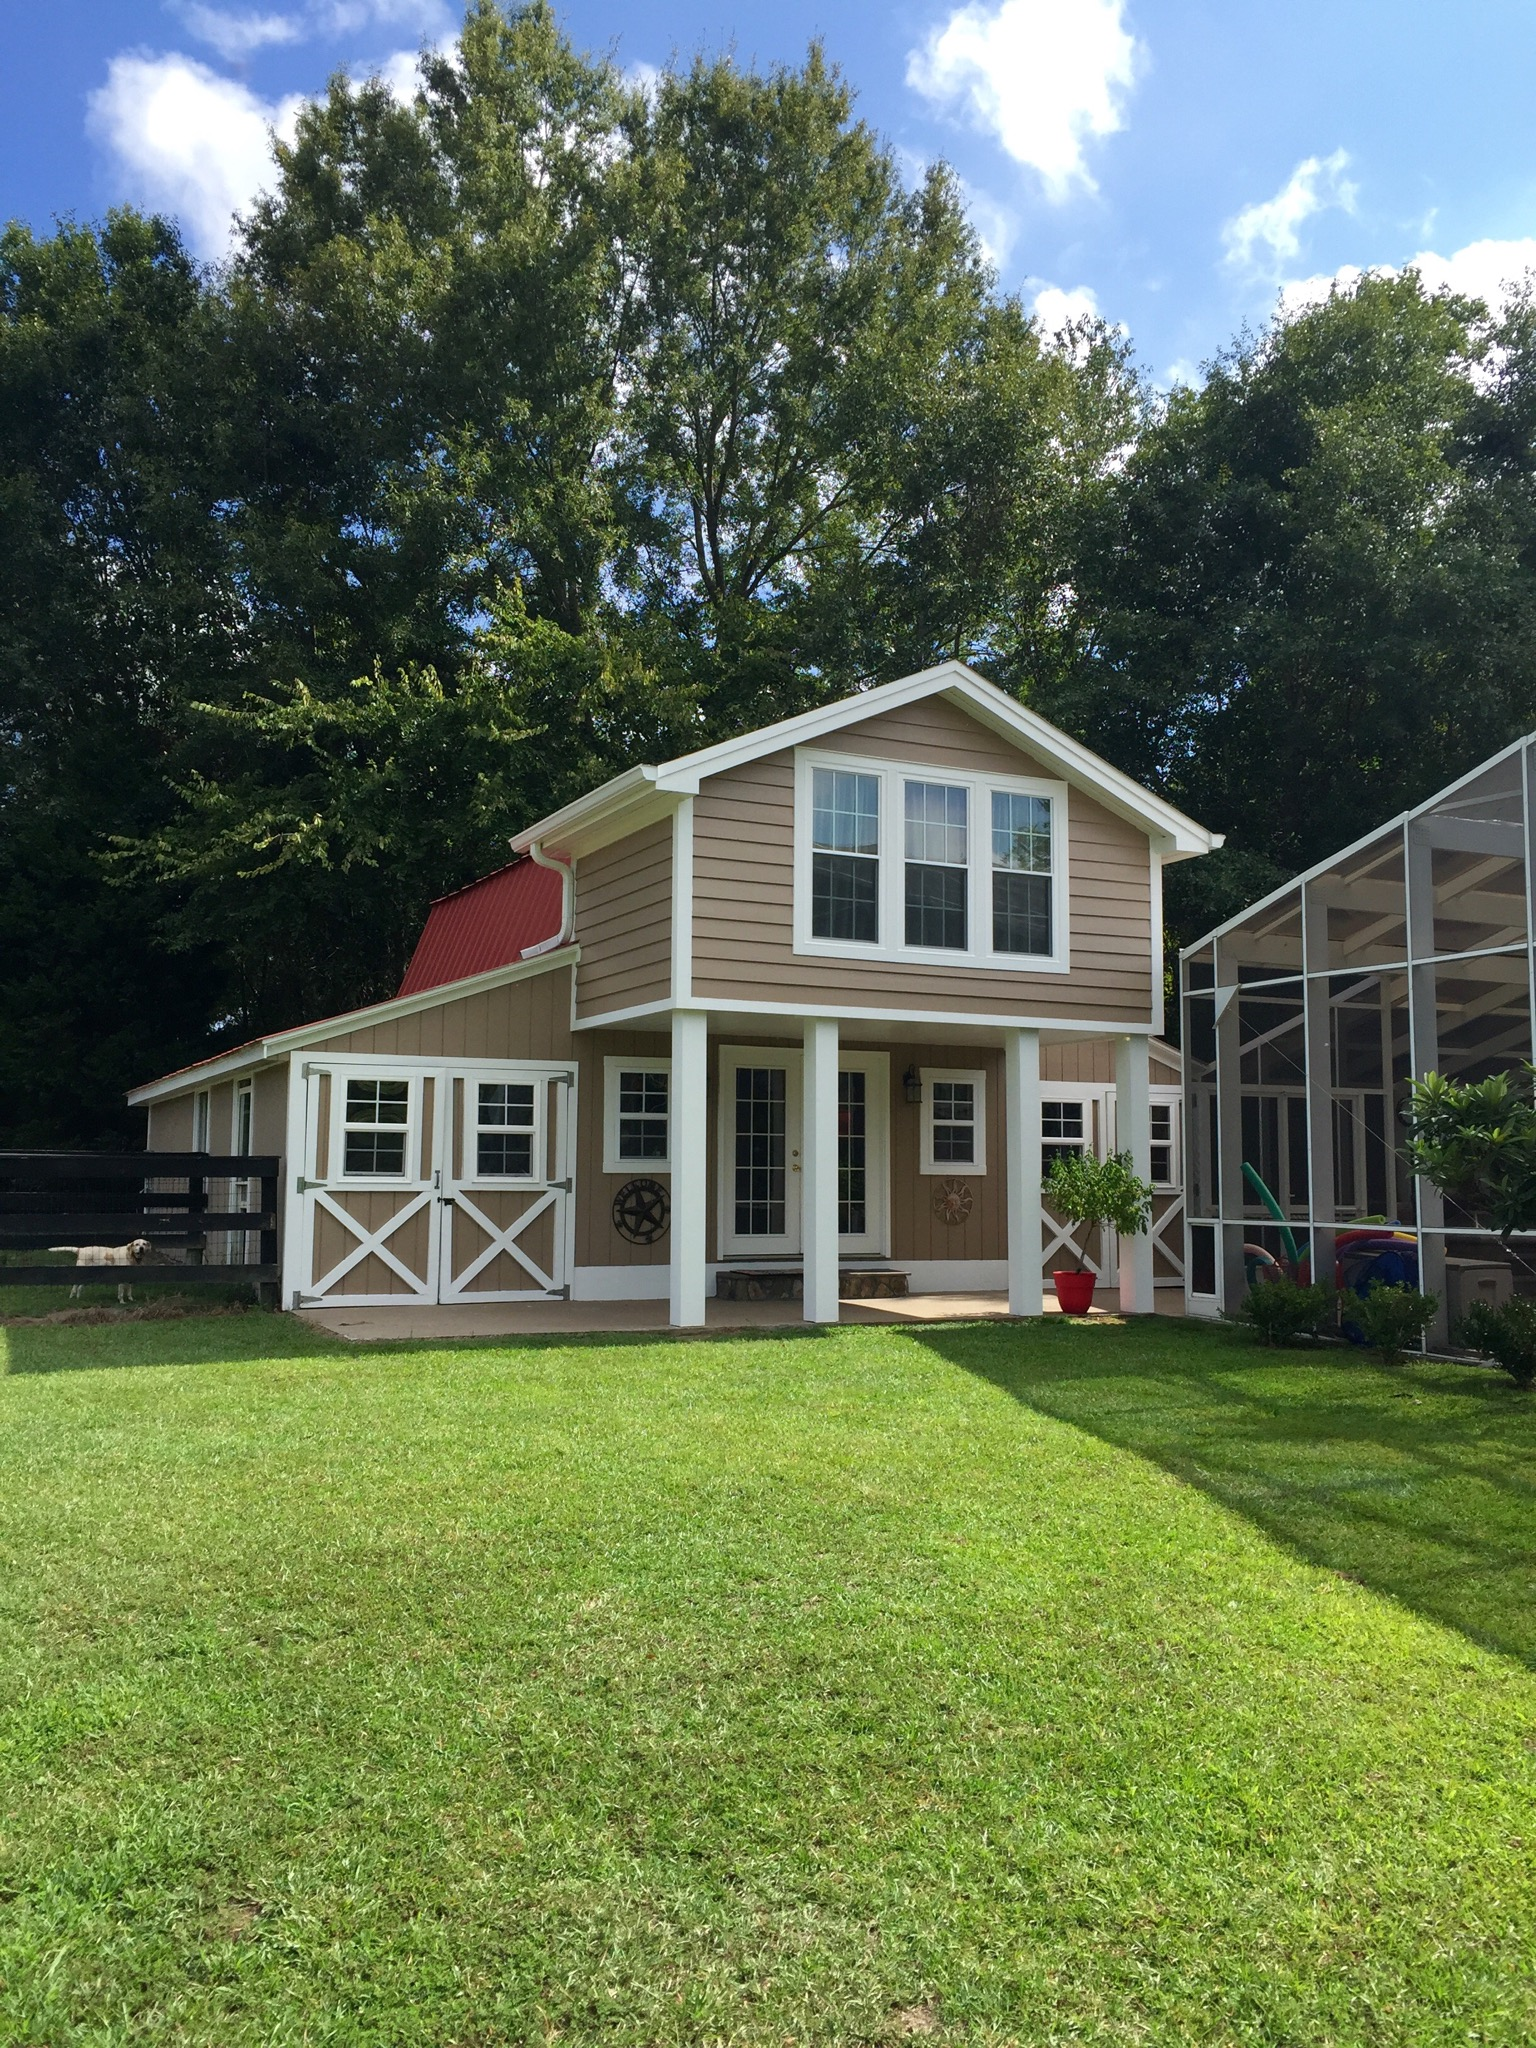 Red Roof Loft Firefly Farm Guesthouses For Rent In Camden South Carolina United States